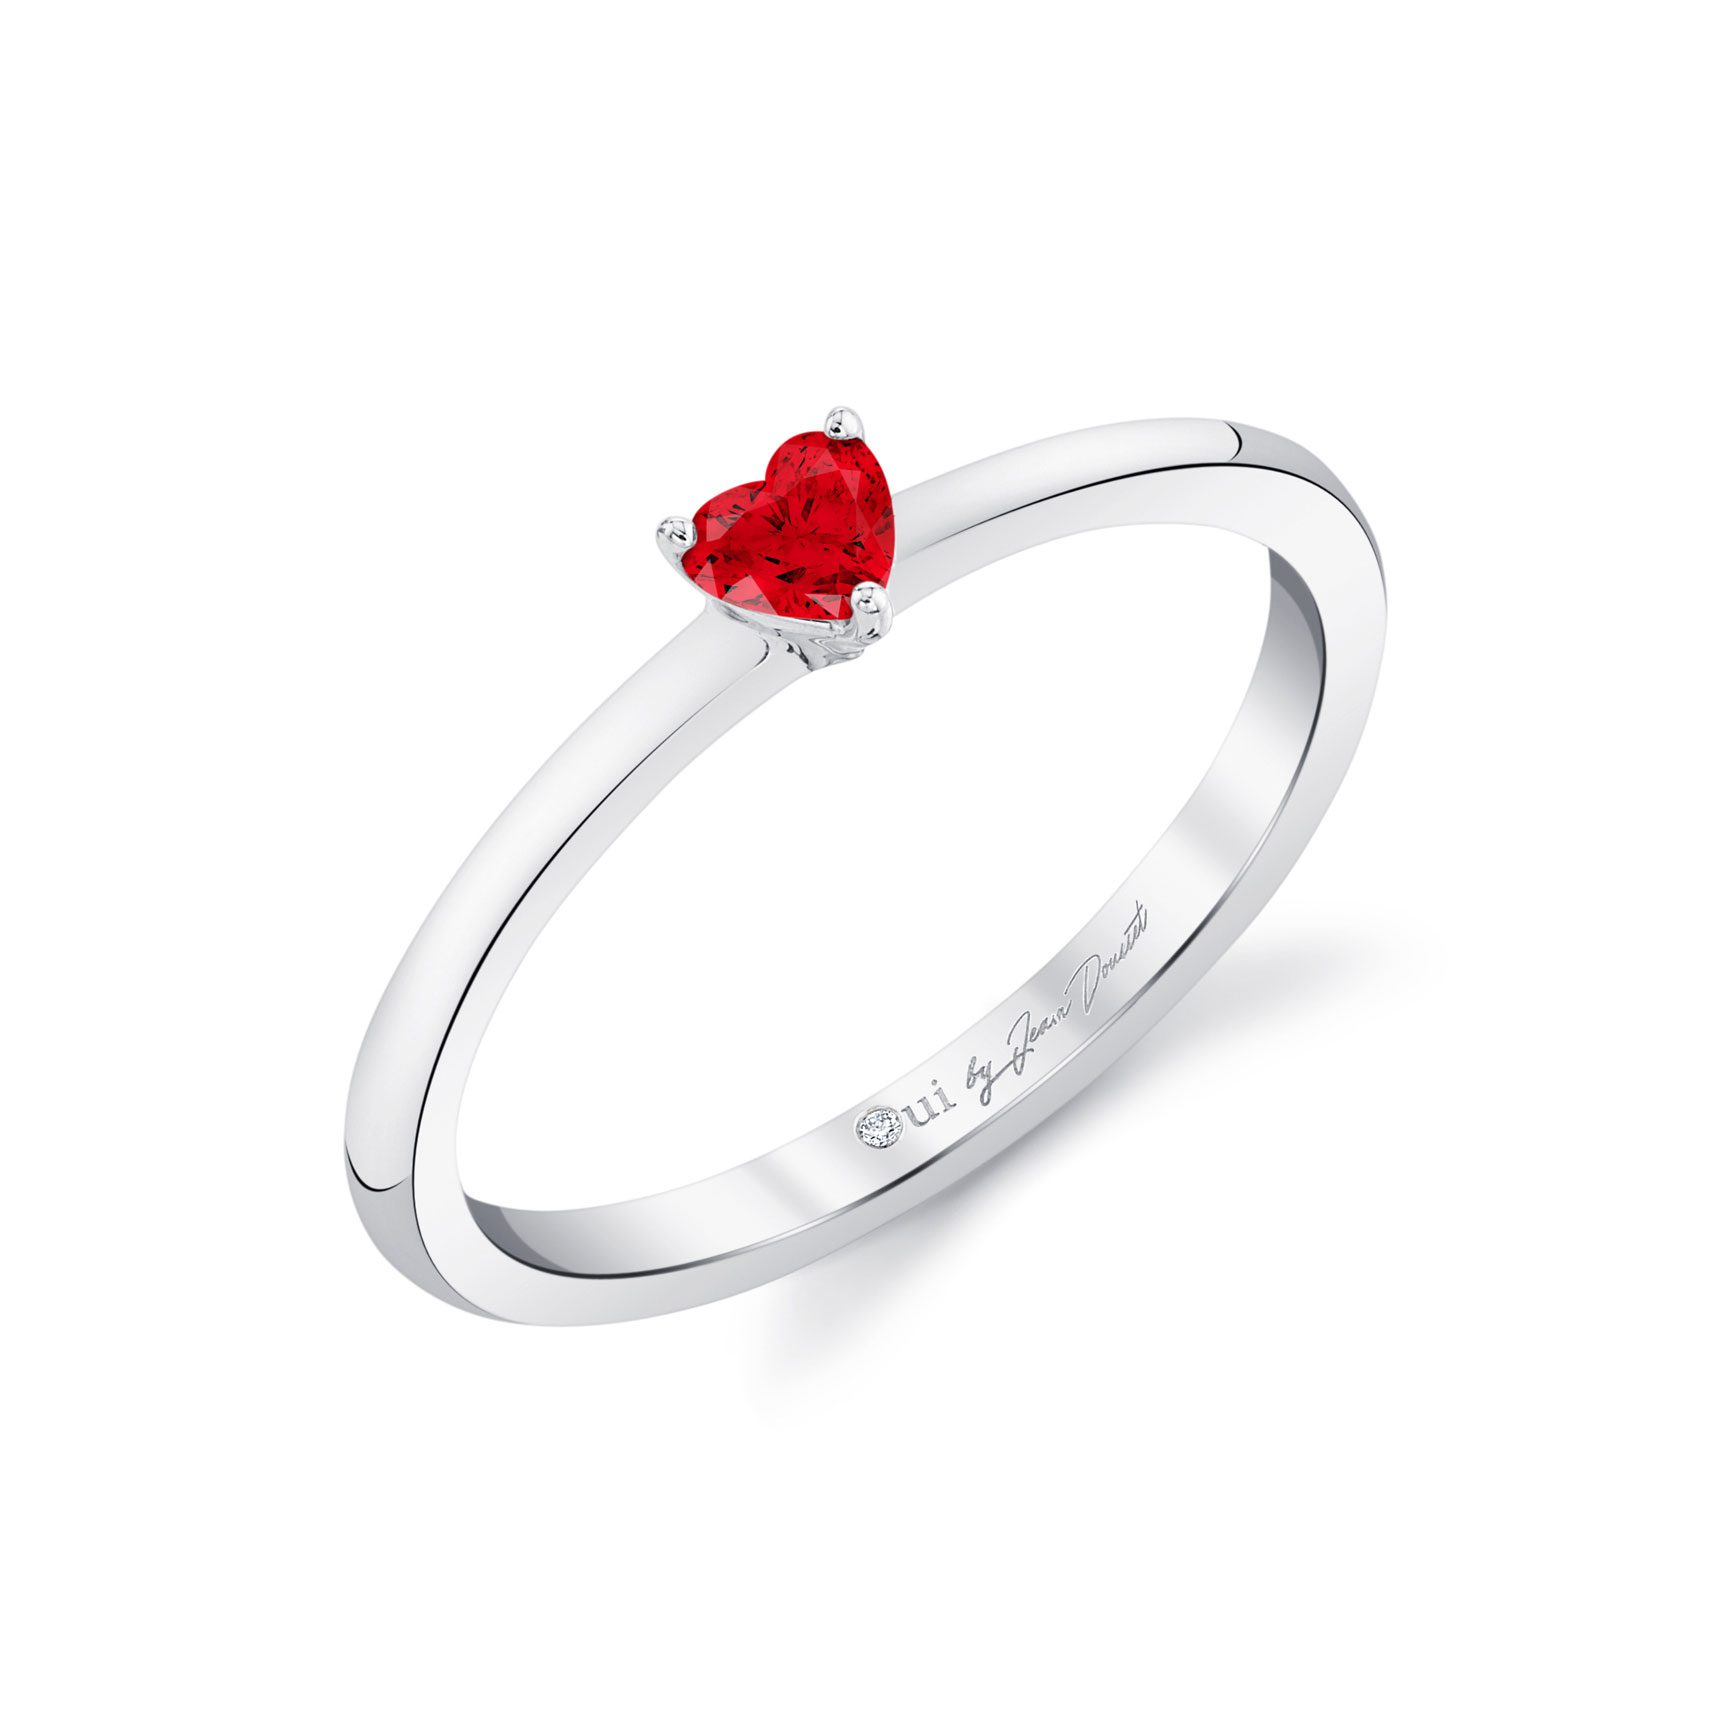 La Petite Heart Ruby Ring in 18k White Gold Profile View by Oui by Jean Dousset